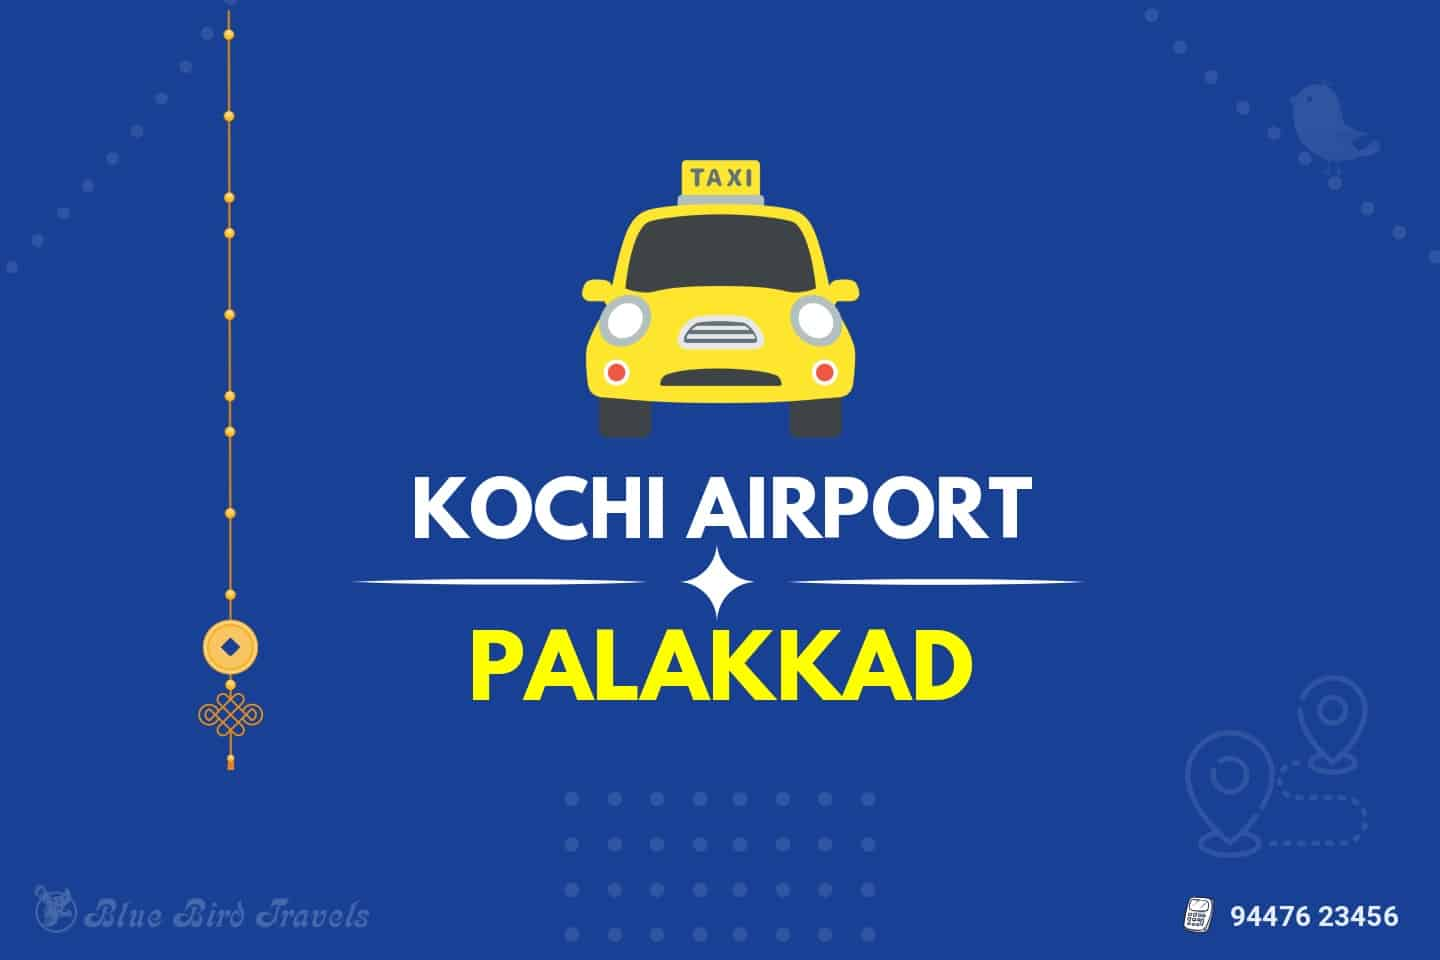 Kochi Airport to Palakkad Taxi (featured Image )